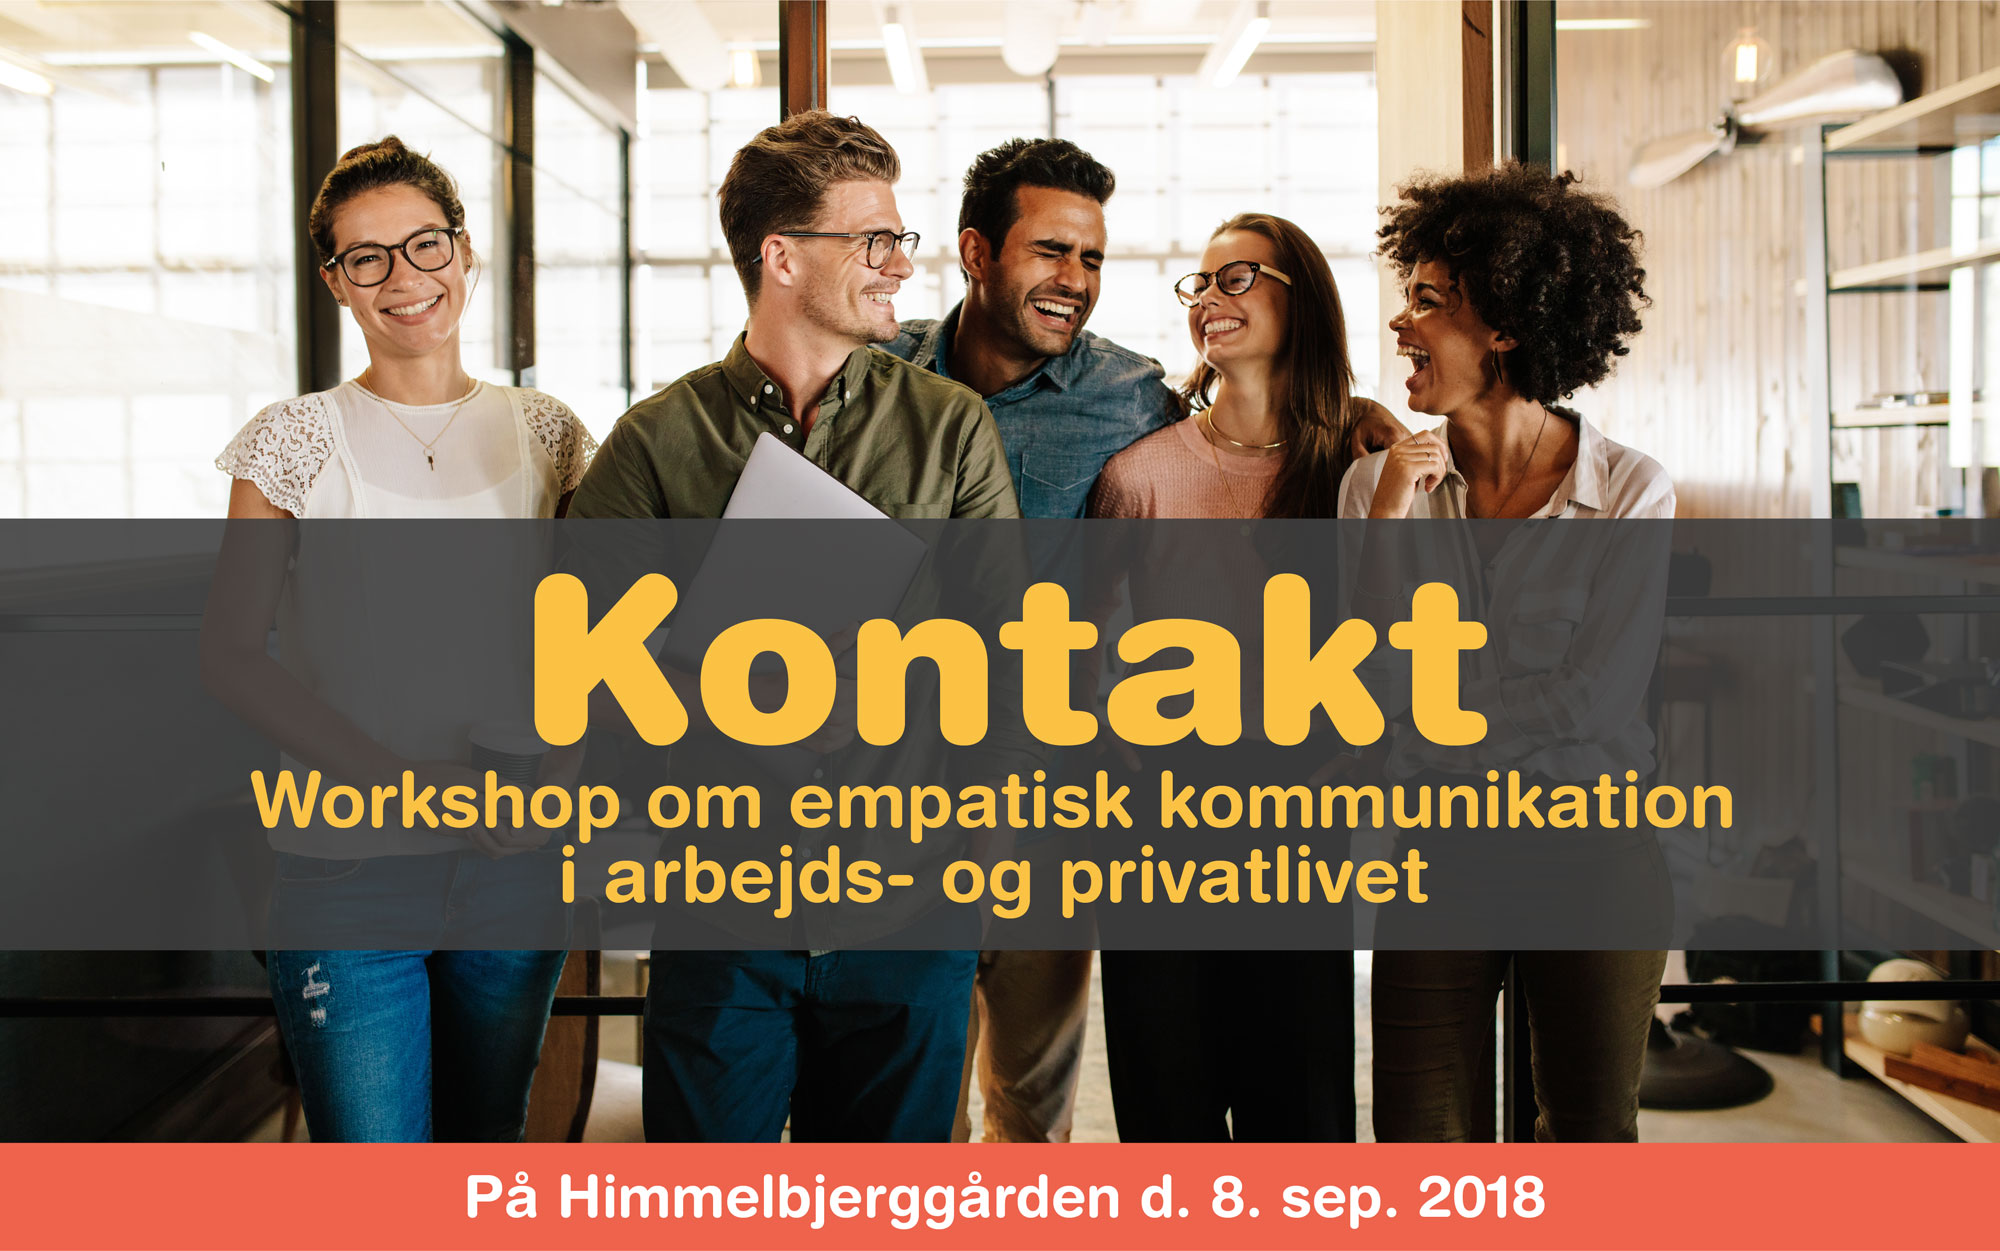 Kontakt - Workshop om empatisk kommunikation